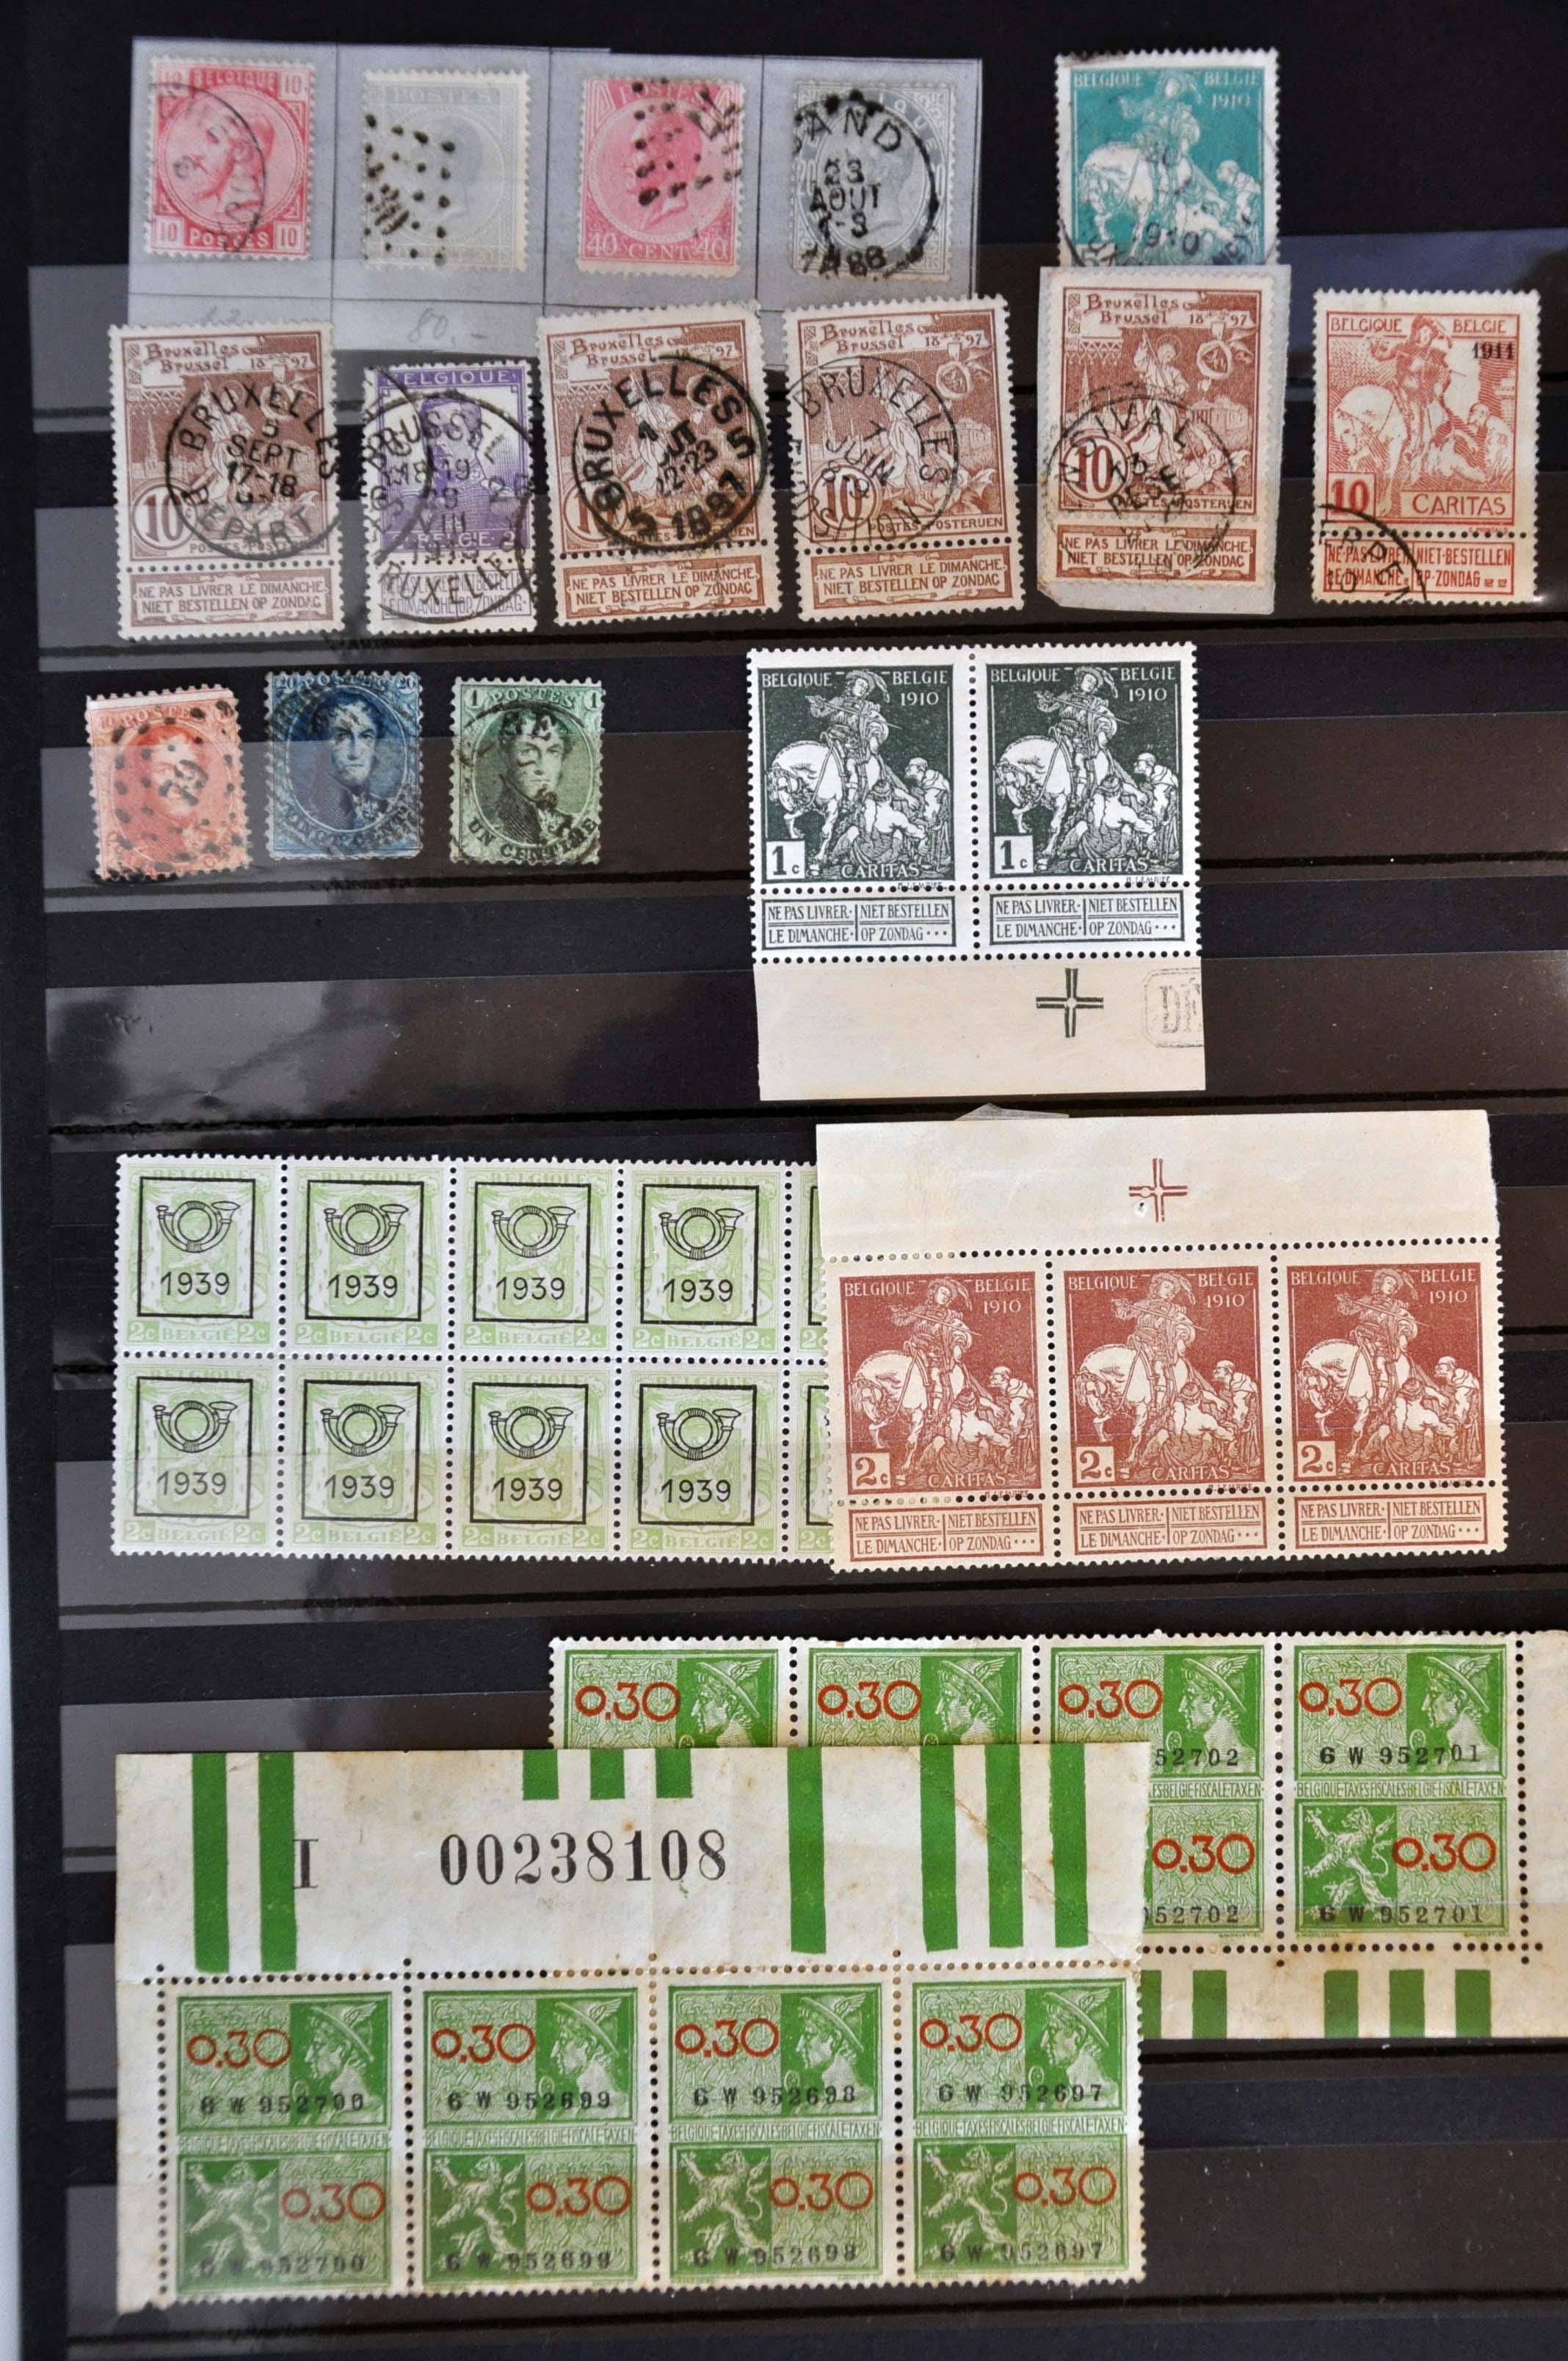 Lot 591 - Belgium and former colonies Belgium -  Corinphila Veilingen Auction 245-246 Day 2 - Foreign countries - Collections and lots, Foreign countries - Boxes and literature